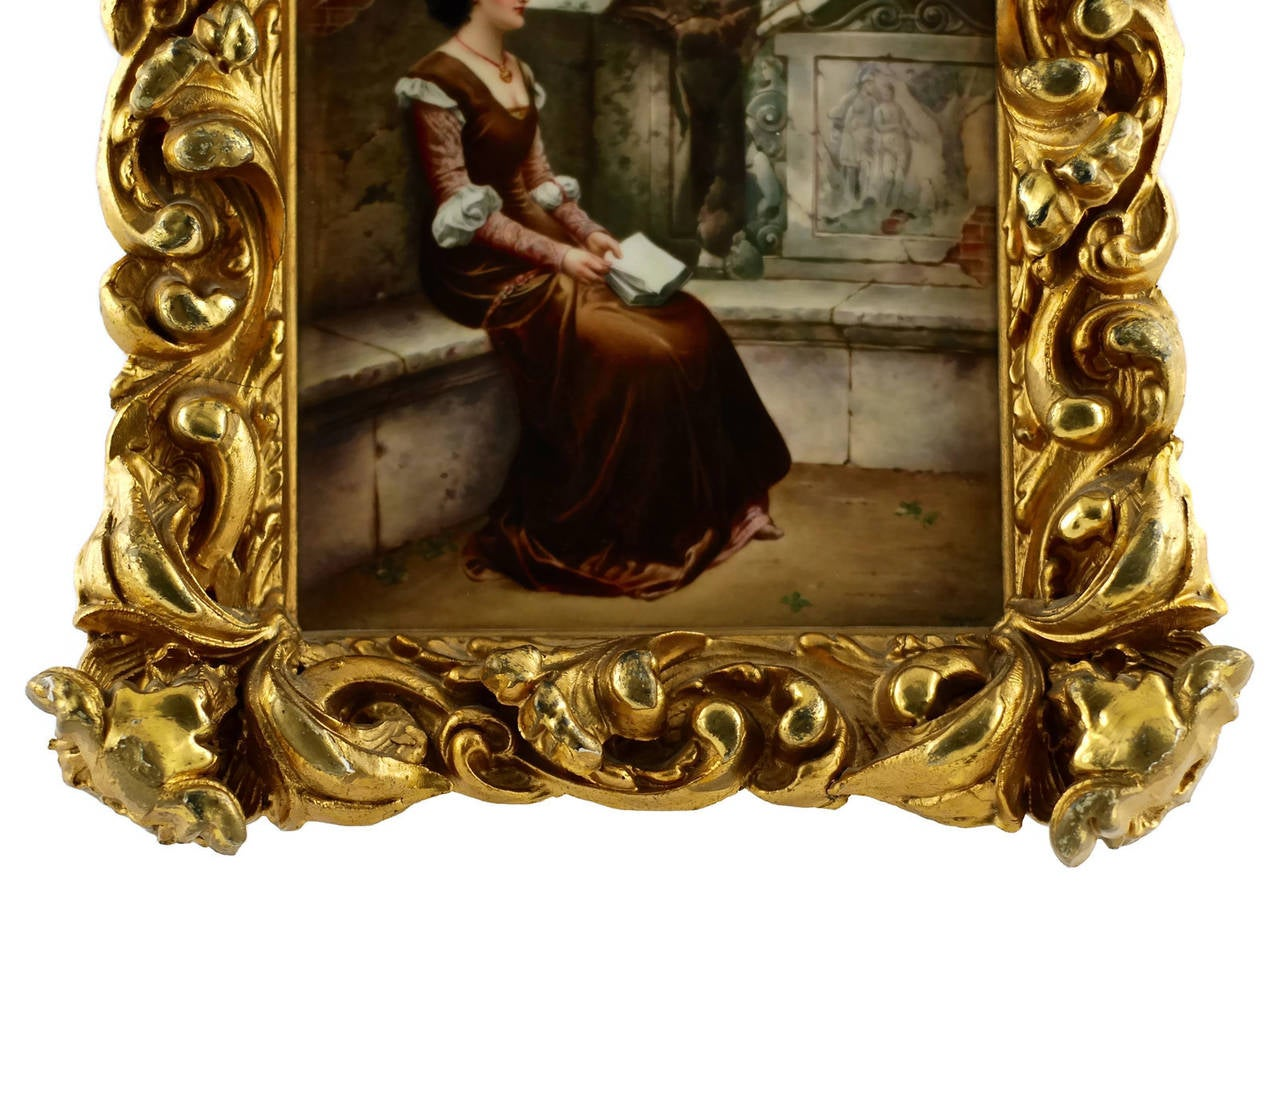 19th Century KPM Plaque Signed by Wagner in Giltwood Frame, 'Erinnerungen' In Excellent Condition For Sale In Cincinnati, OH